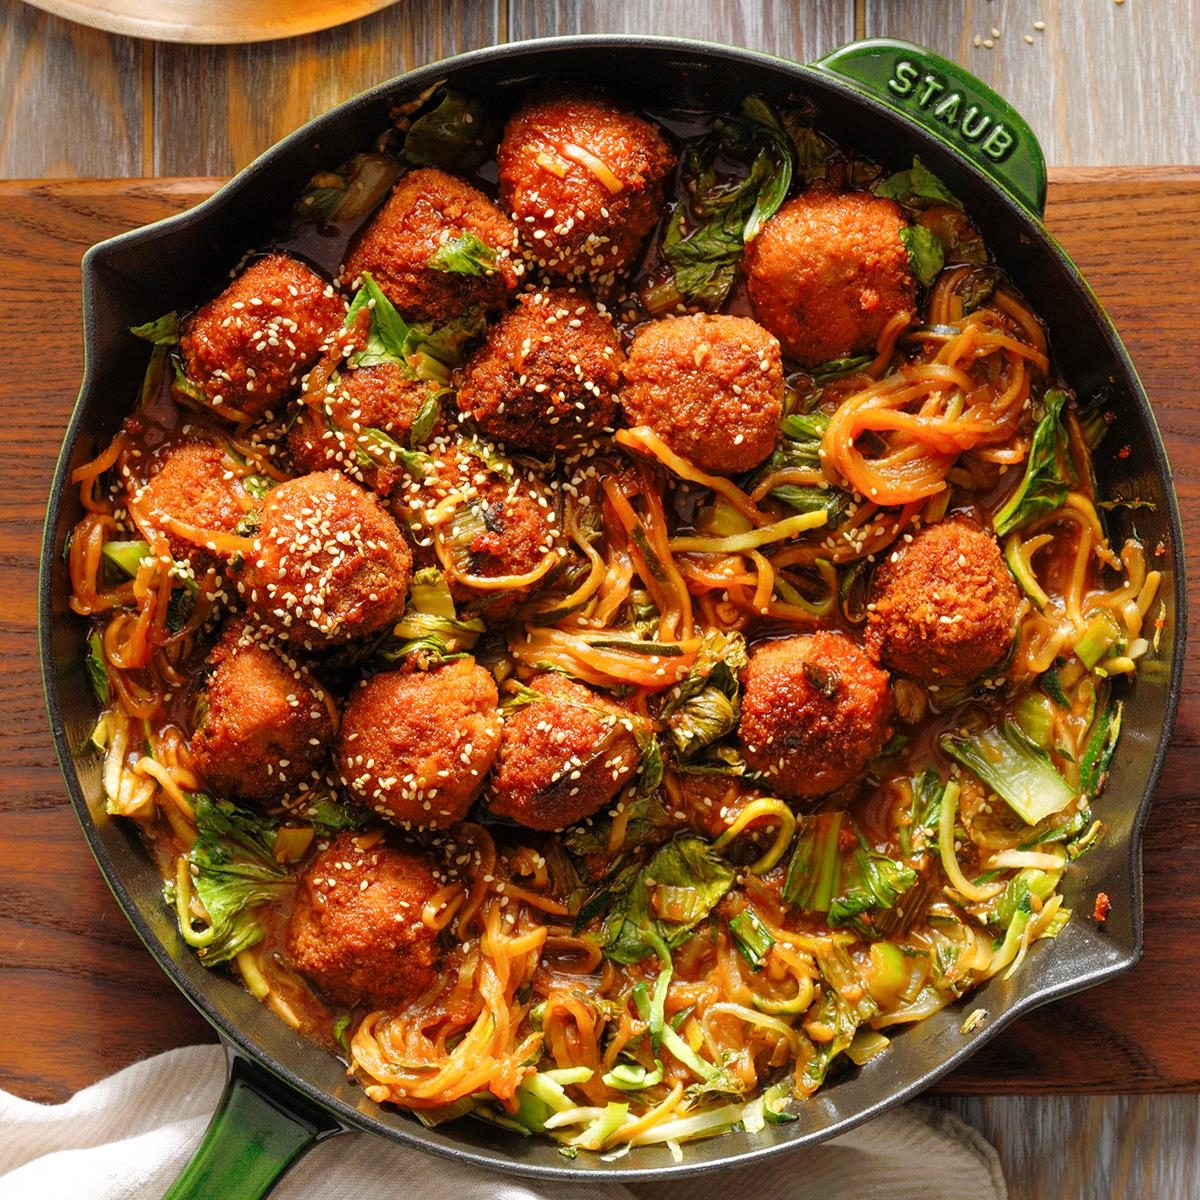 Runner-Up: Plum Pork Spicy Meatballs with Bok Choy and Zucchini